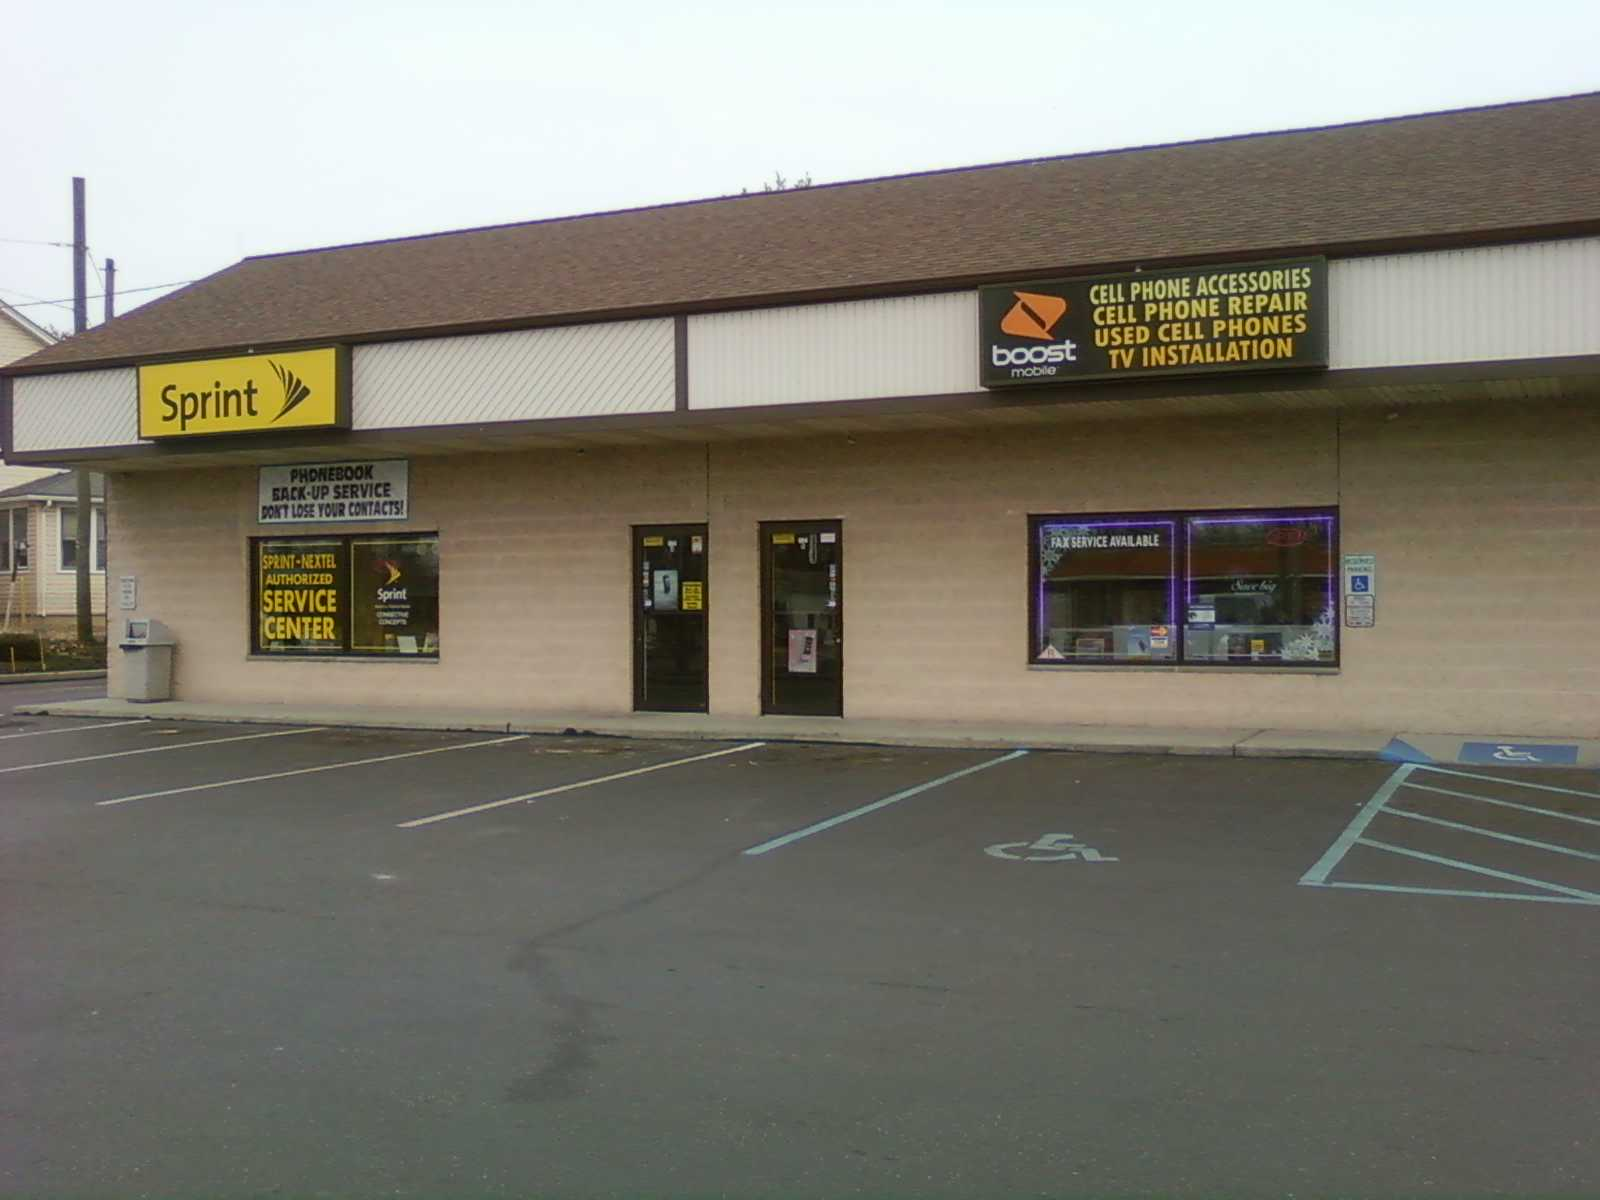 Boost mobile store locations near me - Dress shirt size